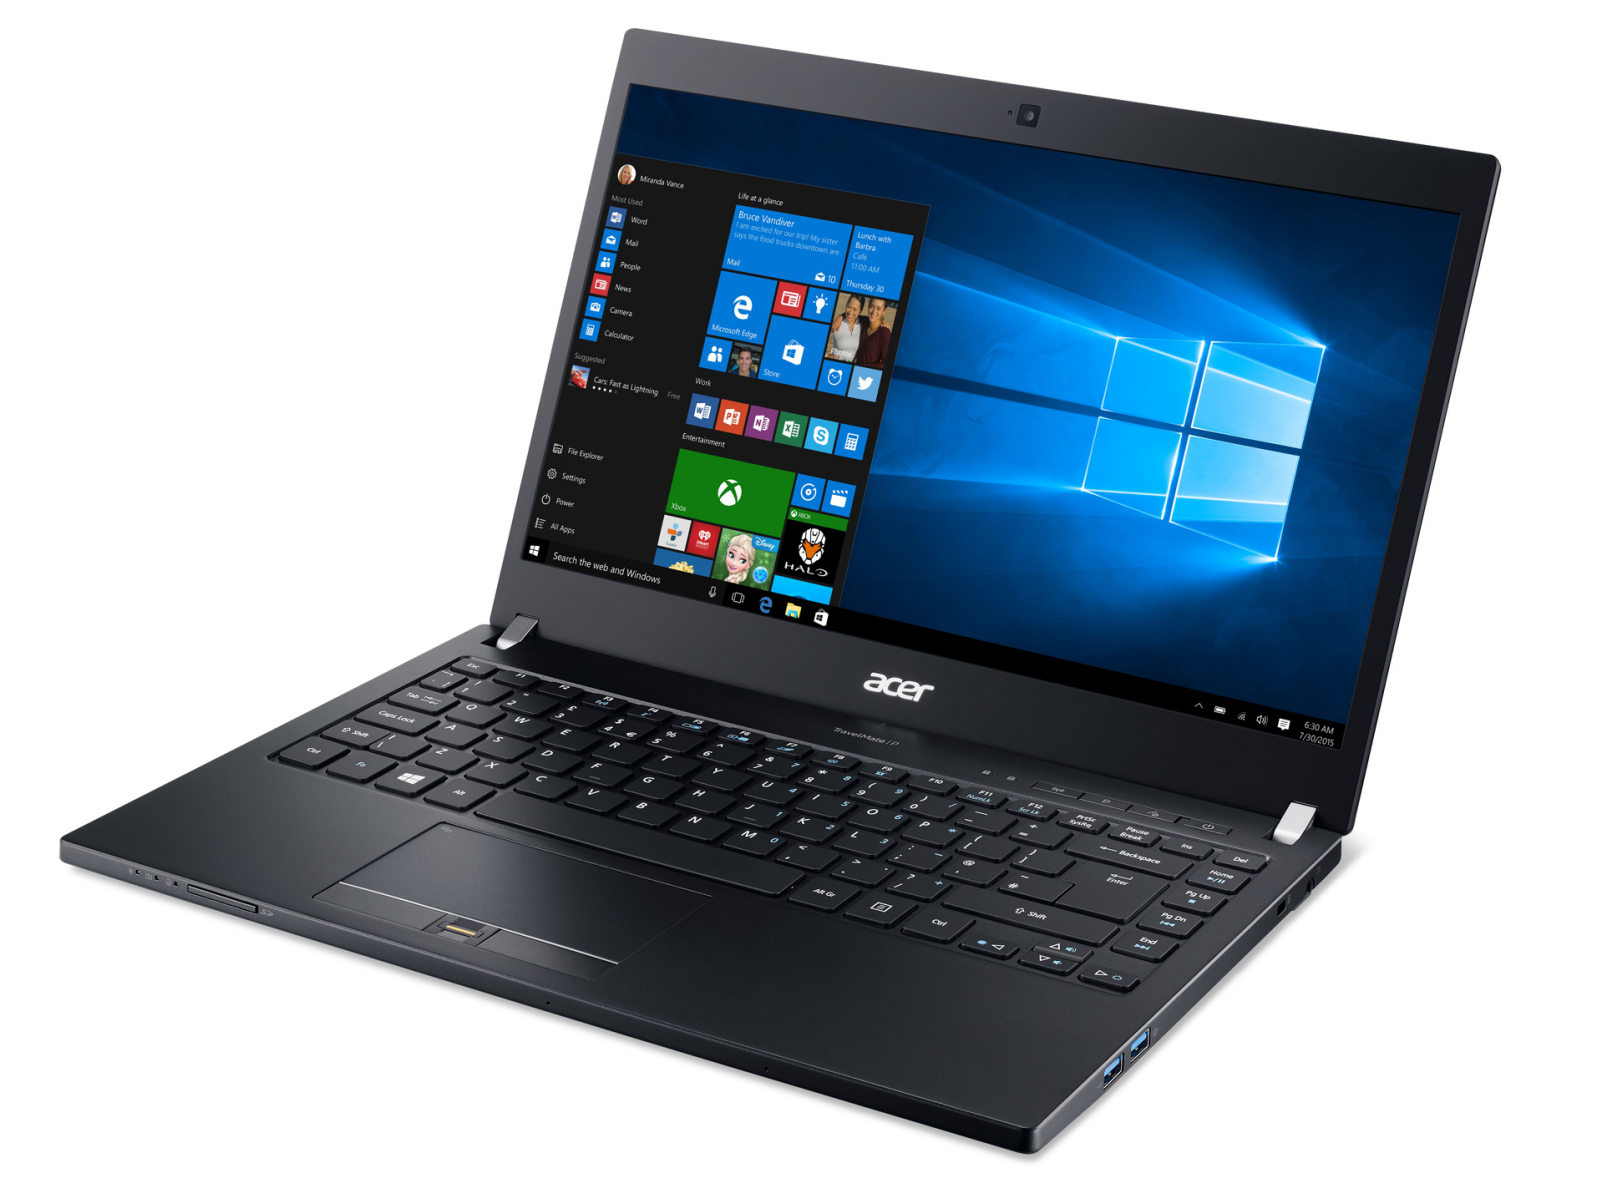 ACER TRAVELMATE P645-M INTEL WLAN WINDOWS 8 X64 DRIVER